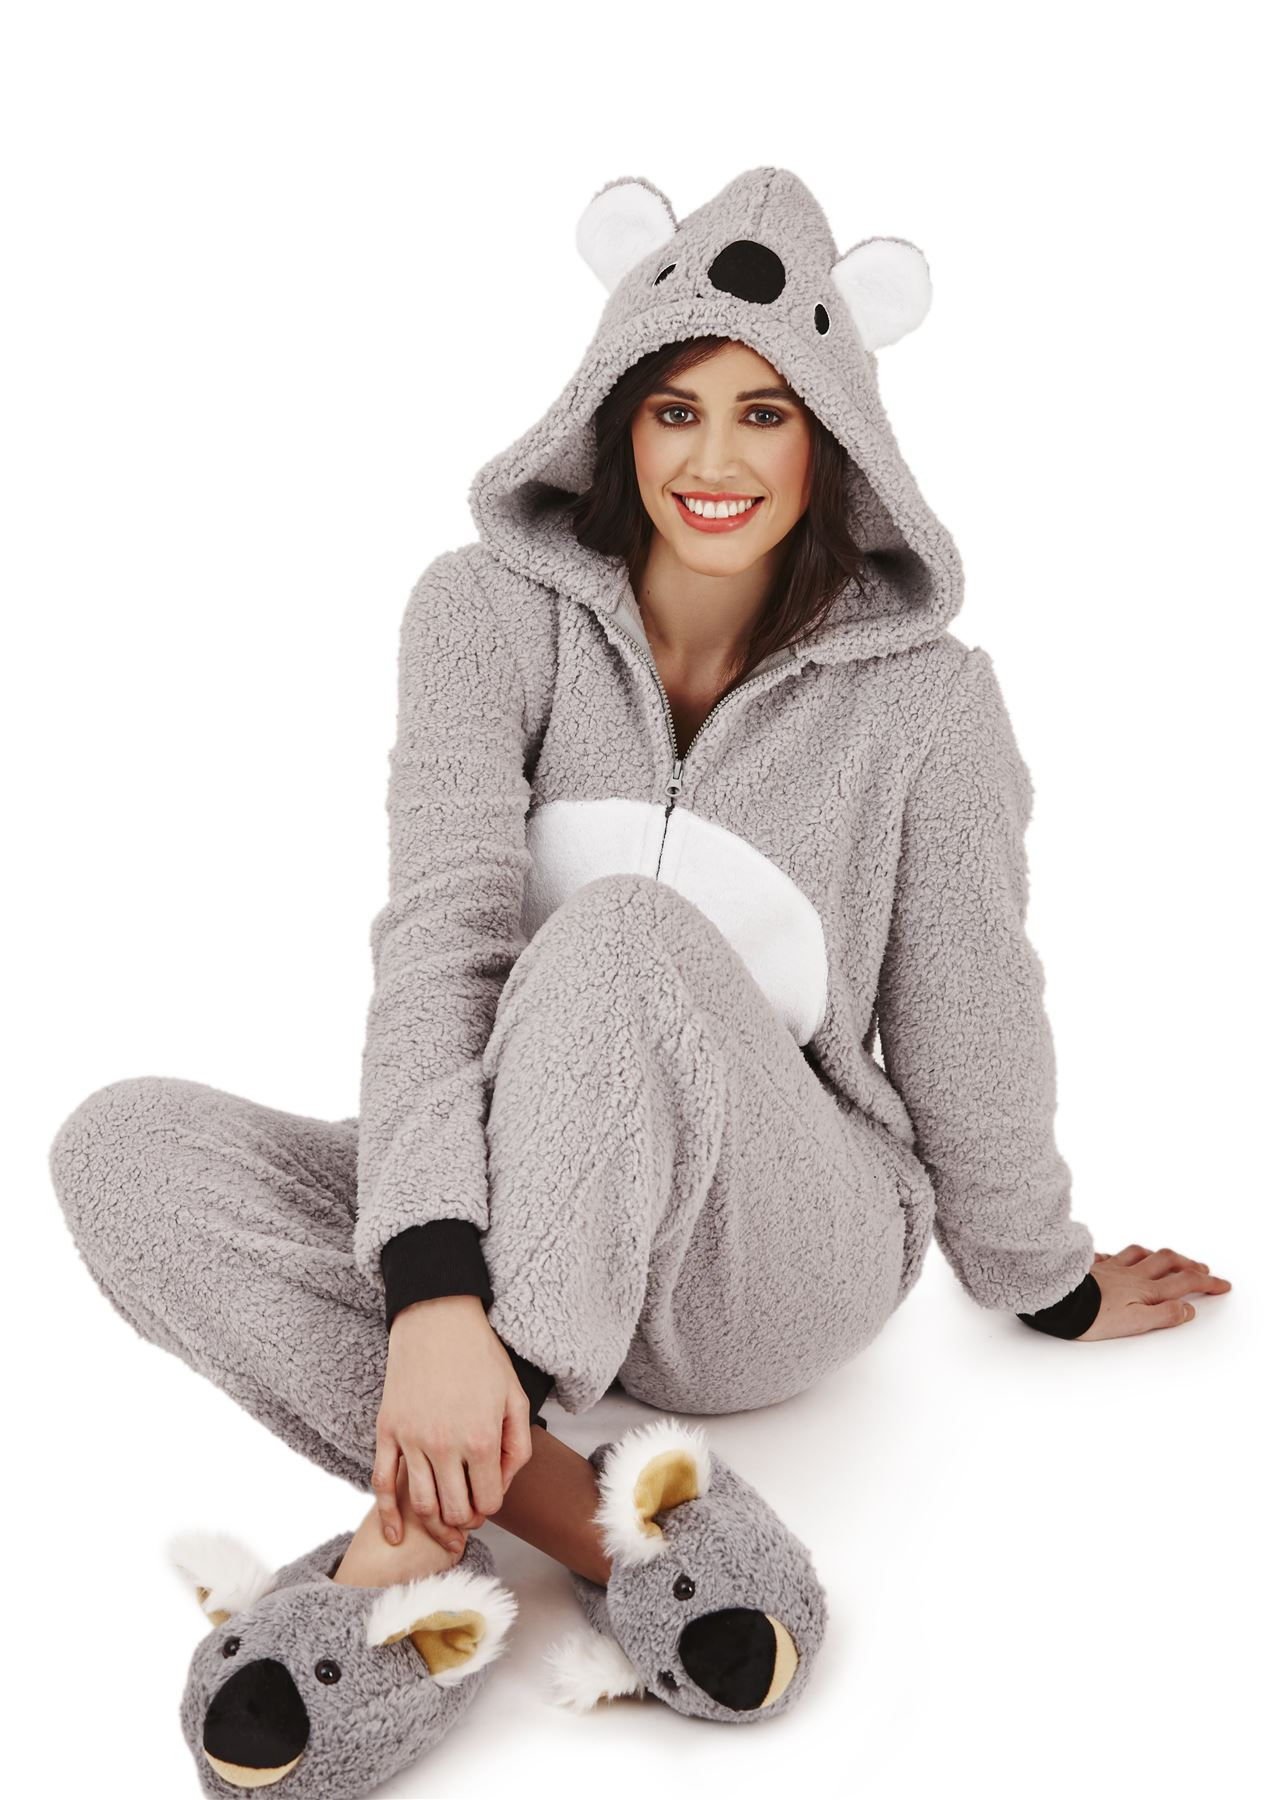 loungeable ladies adult animal onesie jumpsuit koala bear teddy pyjama nightwear ebay. Black Bedroom Furniture Sets. Home Design Ideas